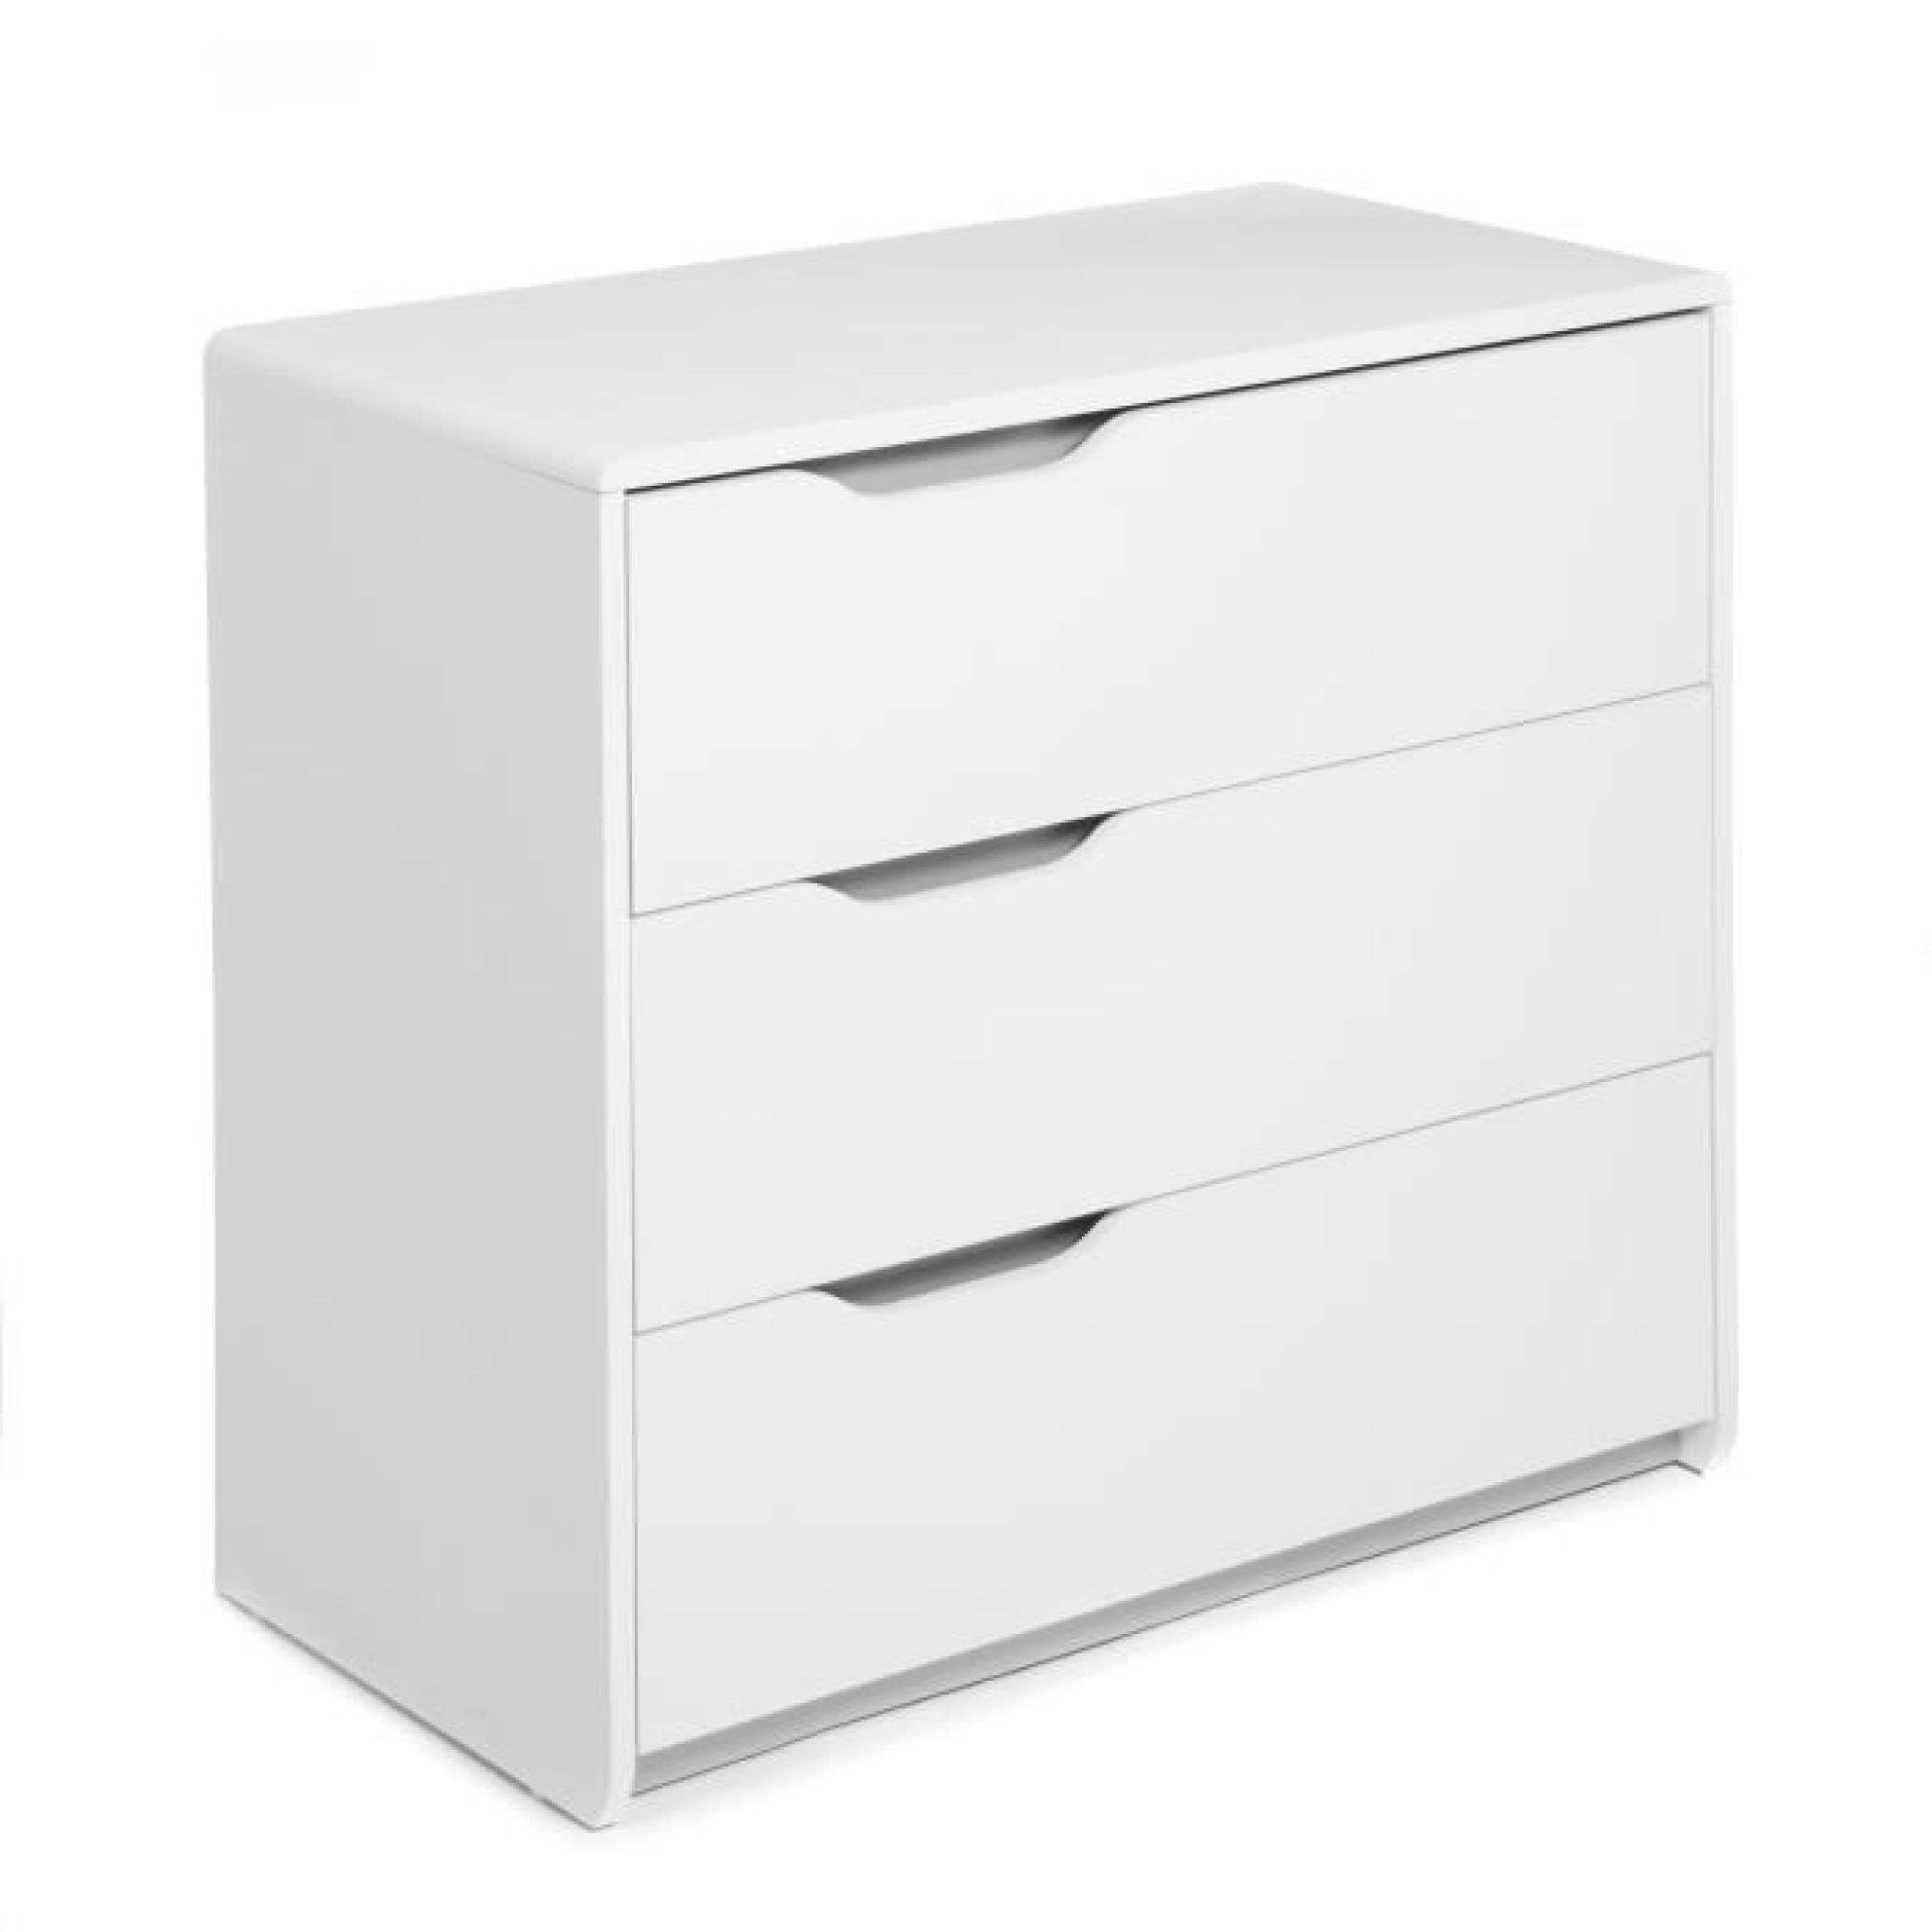 Commode Tiroir Pas Cher Cool Commode Blanche 3 Tiroirs Achat Vente Commode Pas